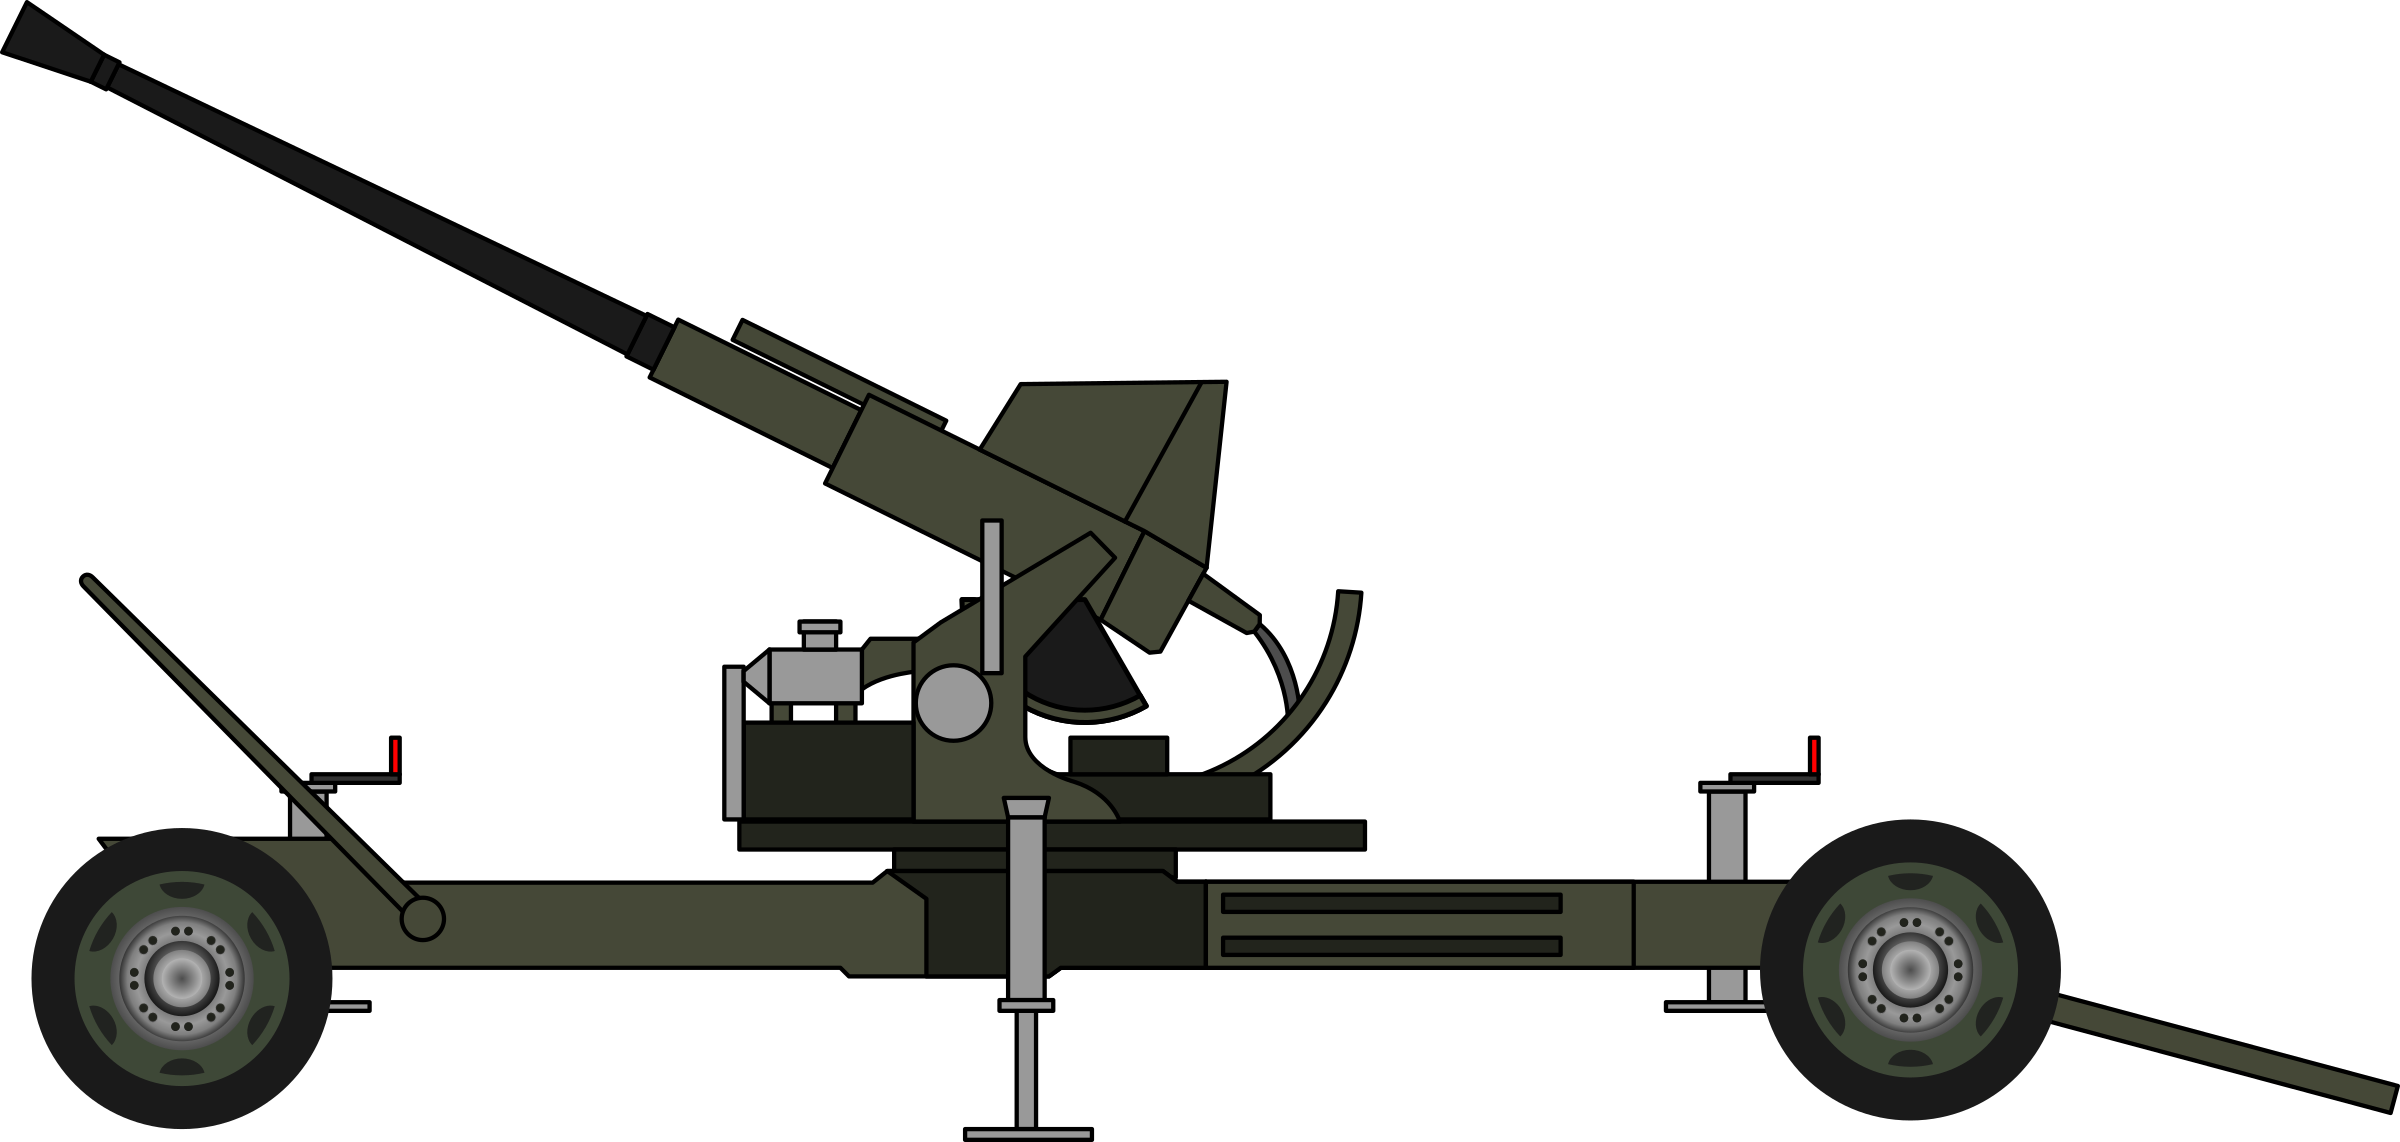 Bofors 40mm gun by derkommander0916